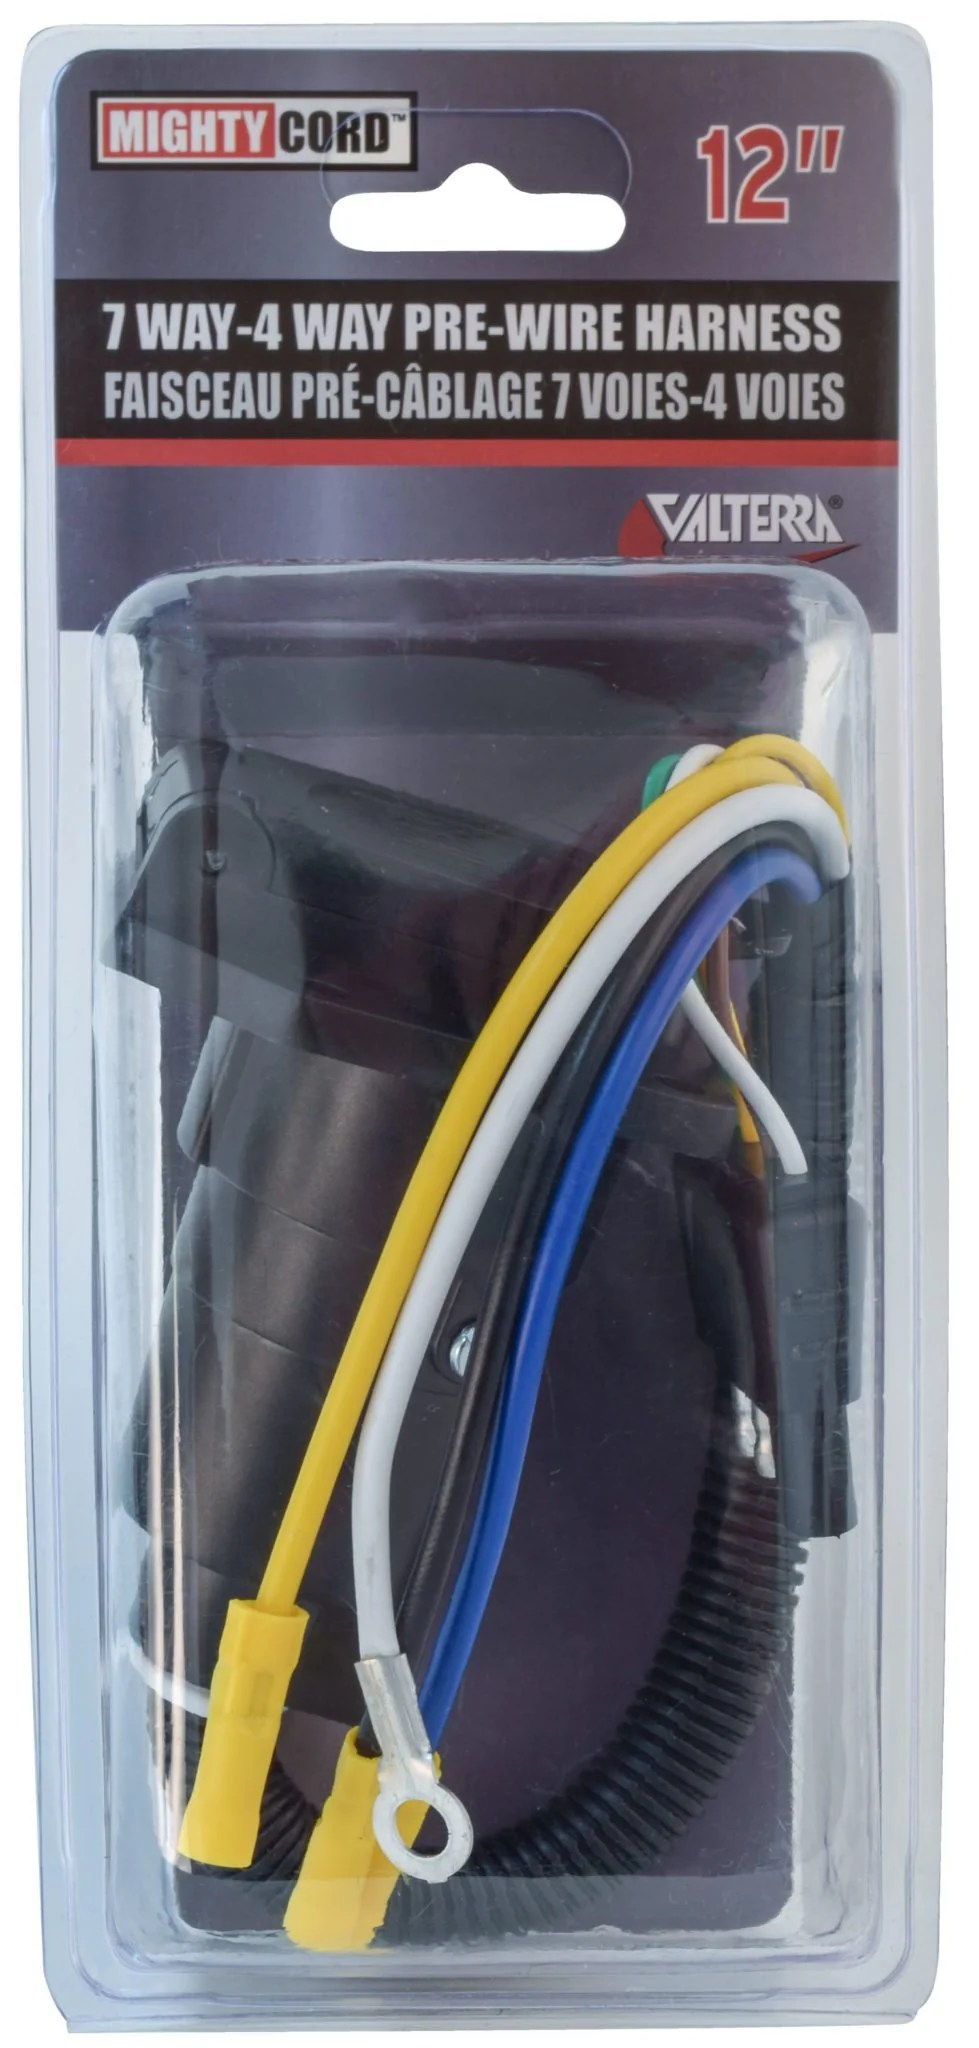 small resolution of mighty cord 7 way to 4 way pre wire harness 12